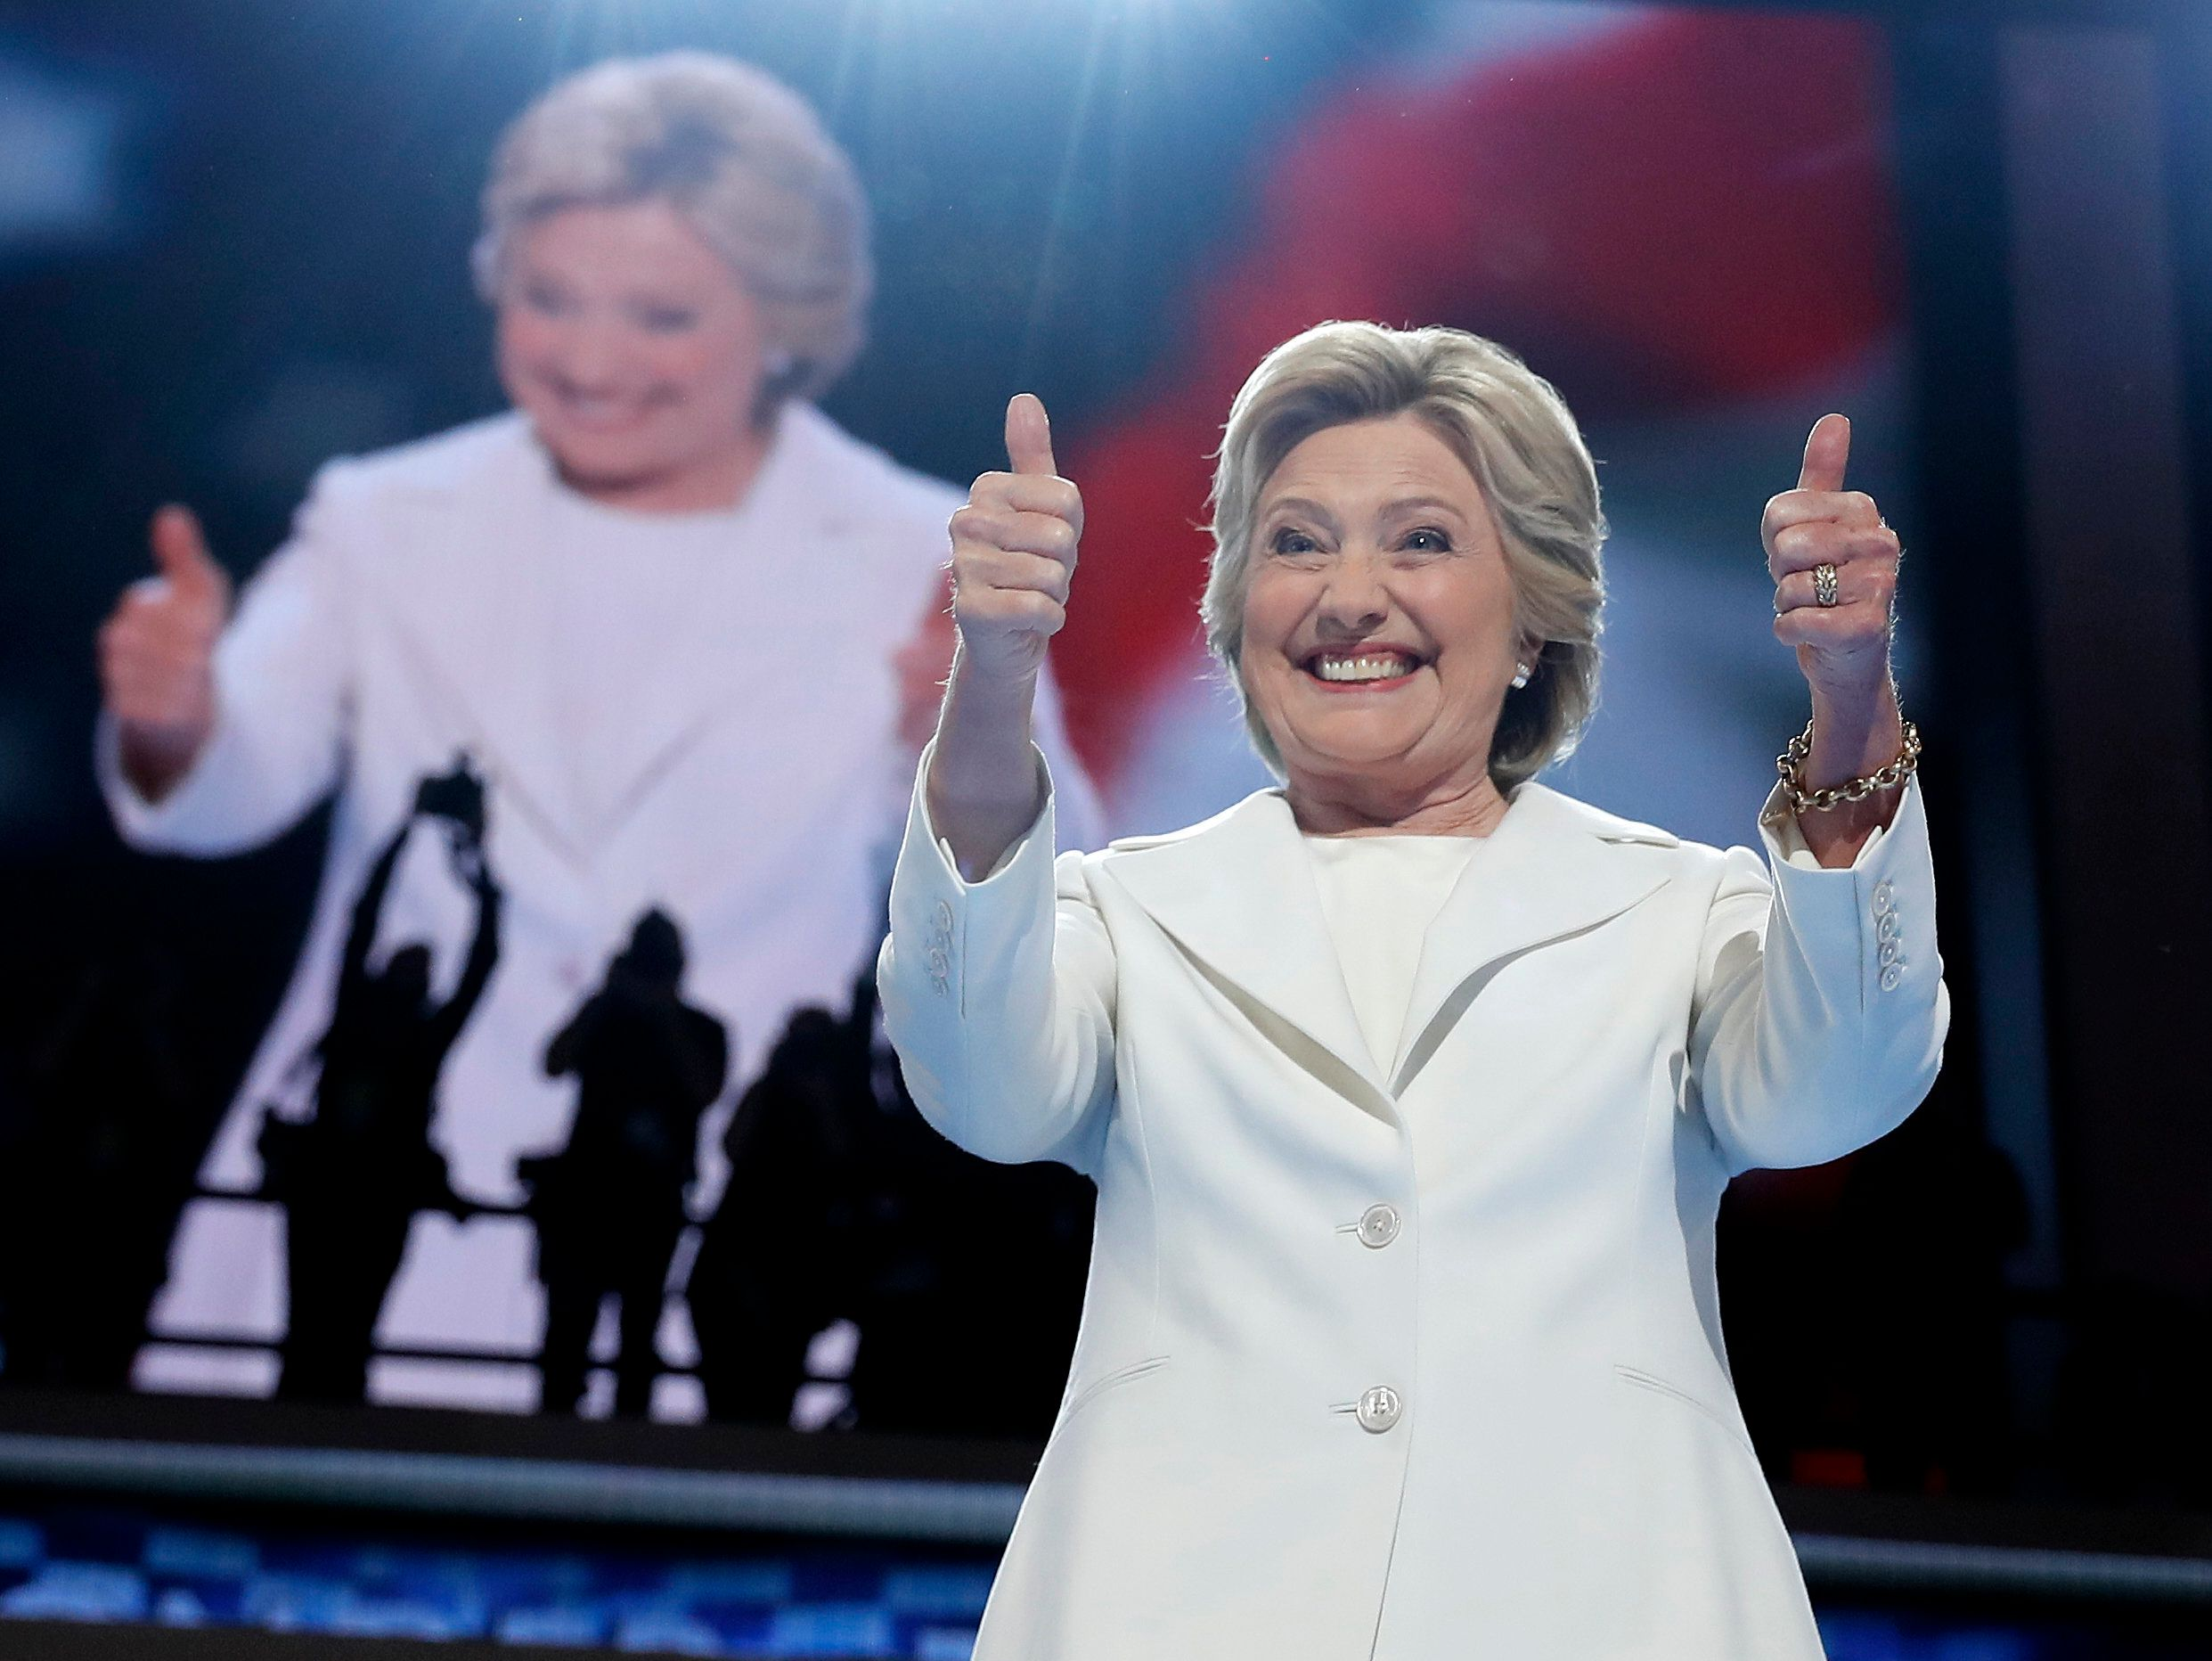 Democratic presidential nominee Hillary Clinton gives her thumbs up as she appears on stage during the final day of the Democratic National Convention in Philadelphia, Thursday, July 28, 2016. (AP Photo/Carolyn Kaster)